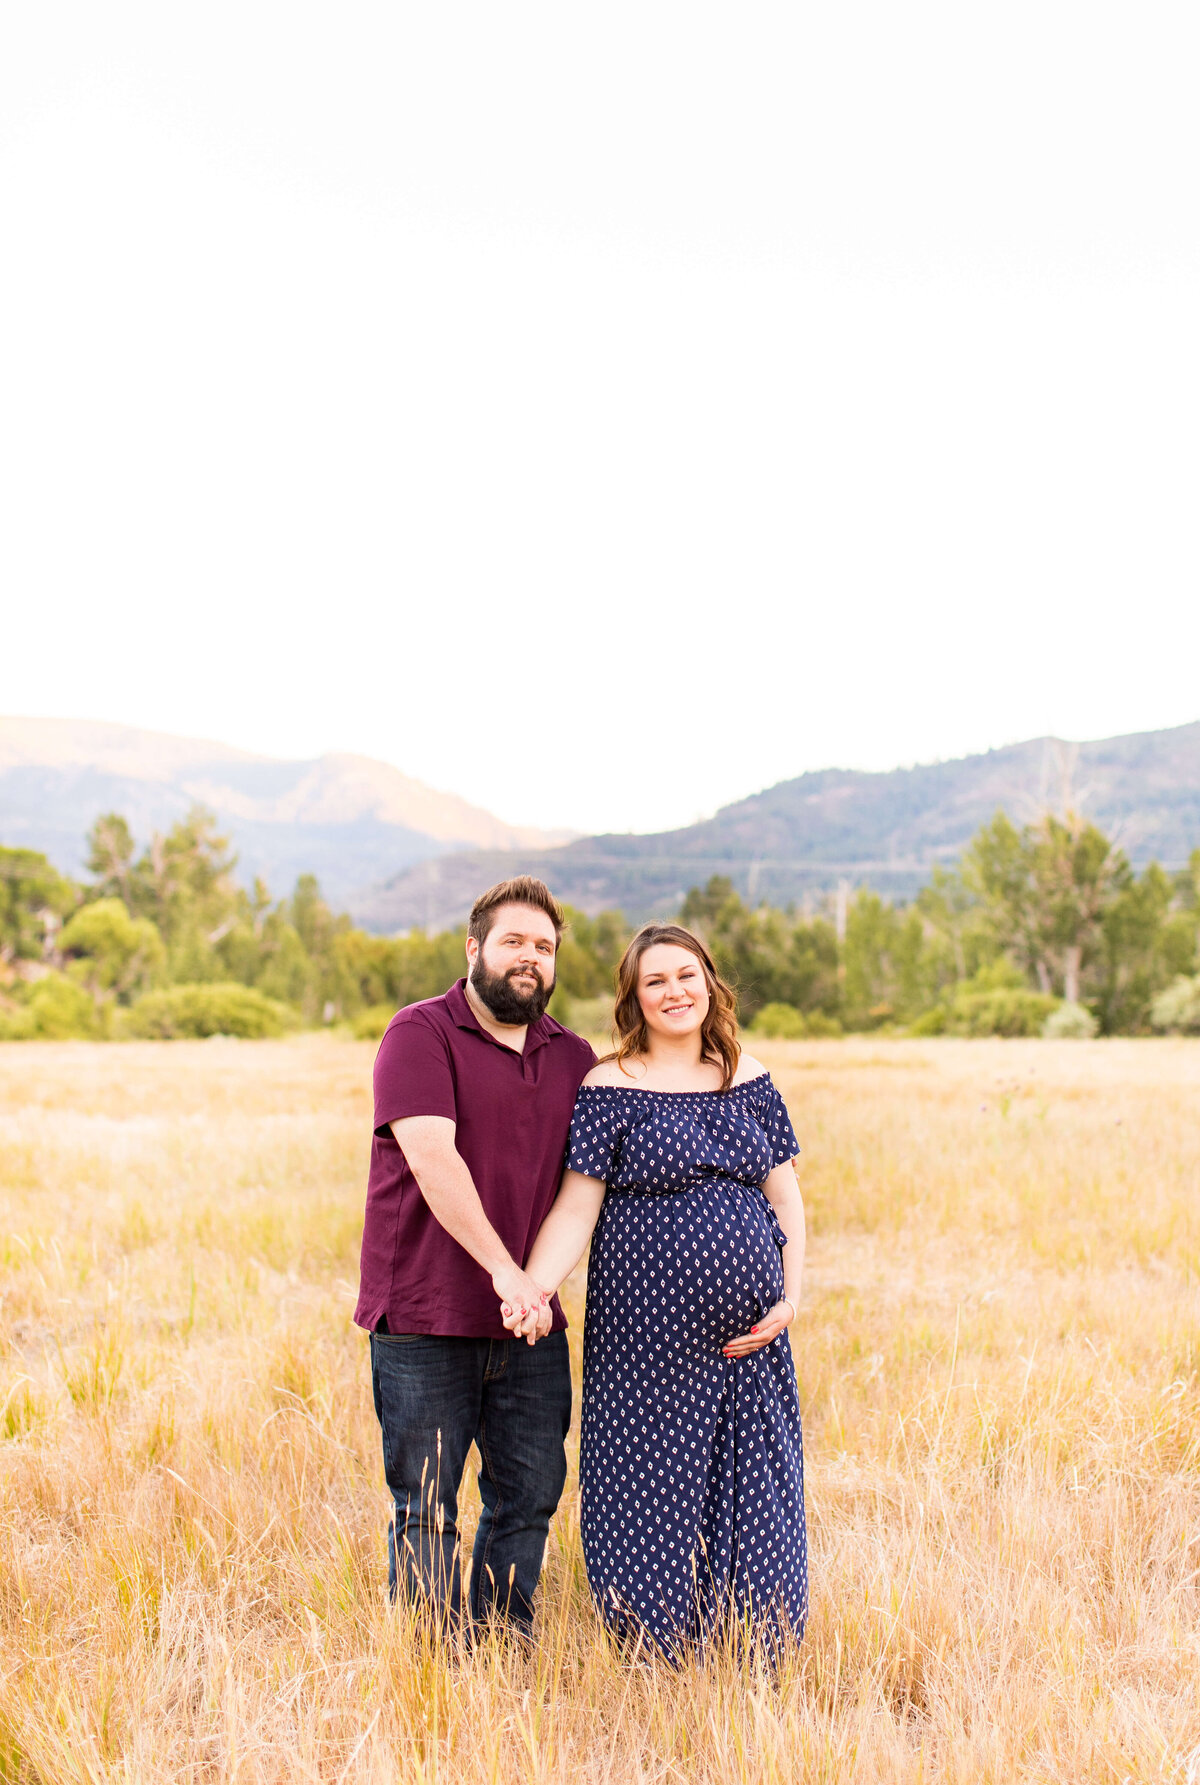 Ashley&JoelMaternitySession2020-64